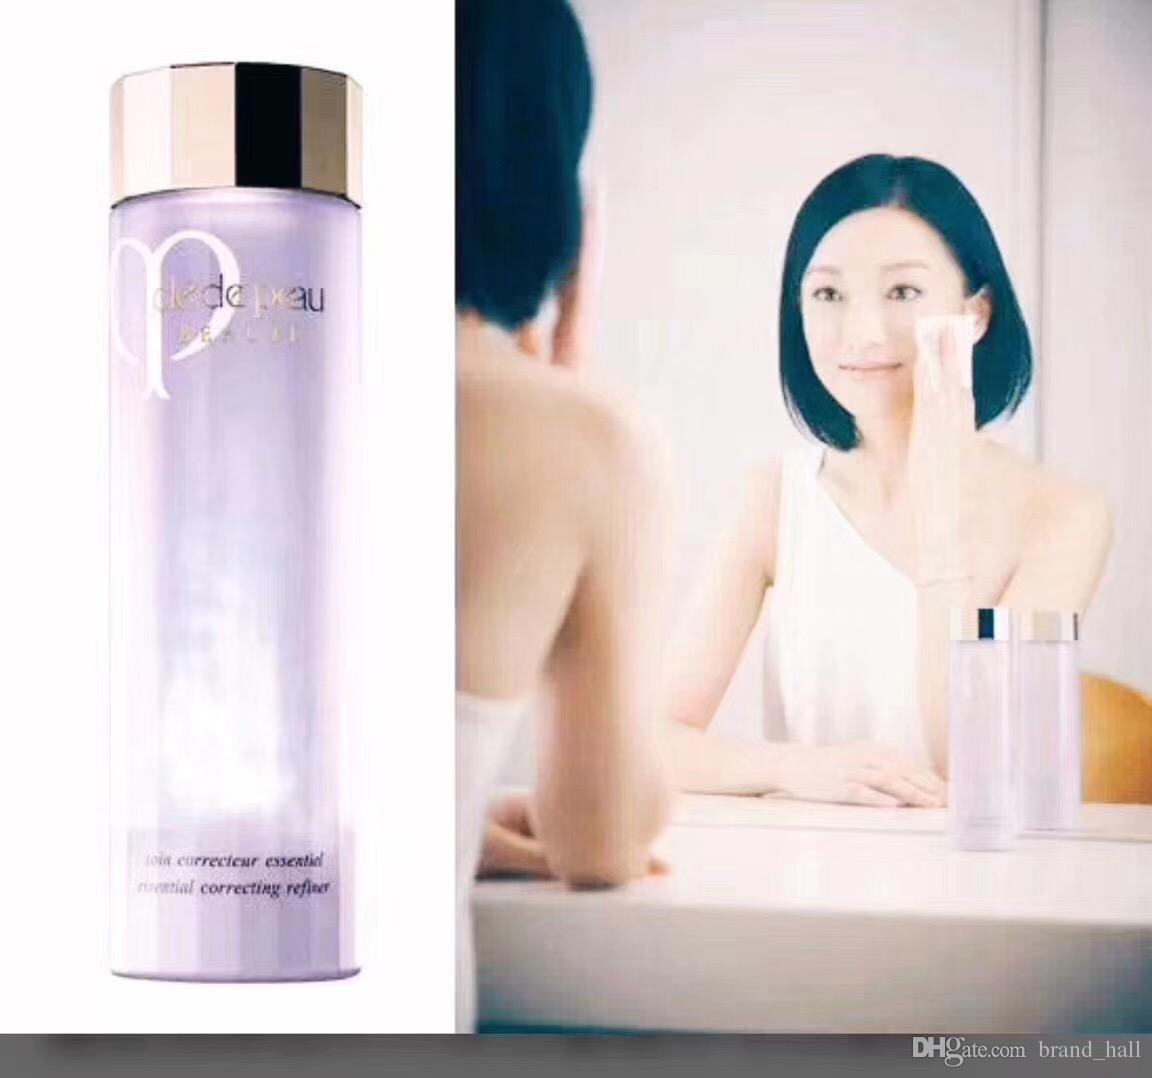 Japan Luxury Famouse brand cle de peau beauty CPB soin correcteur essence 170ml